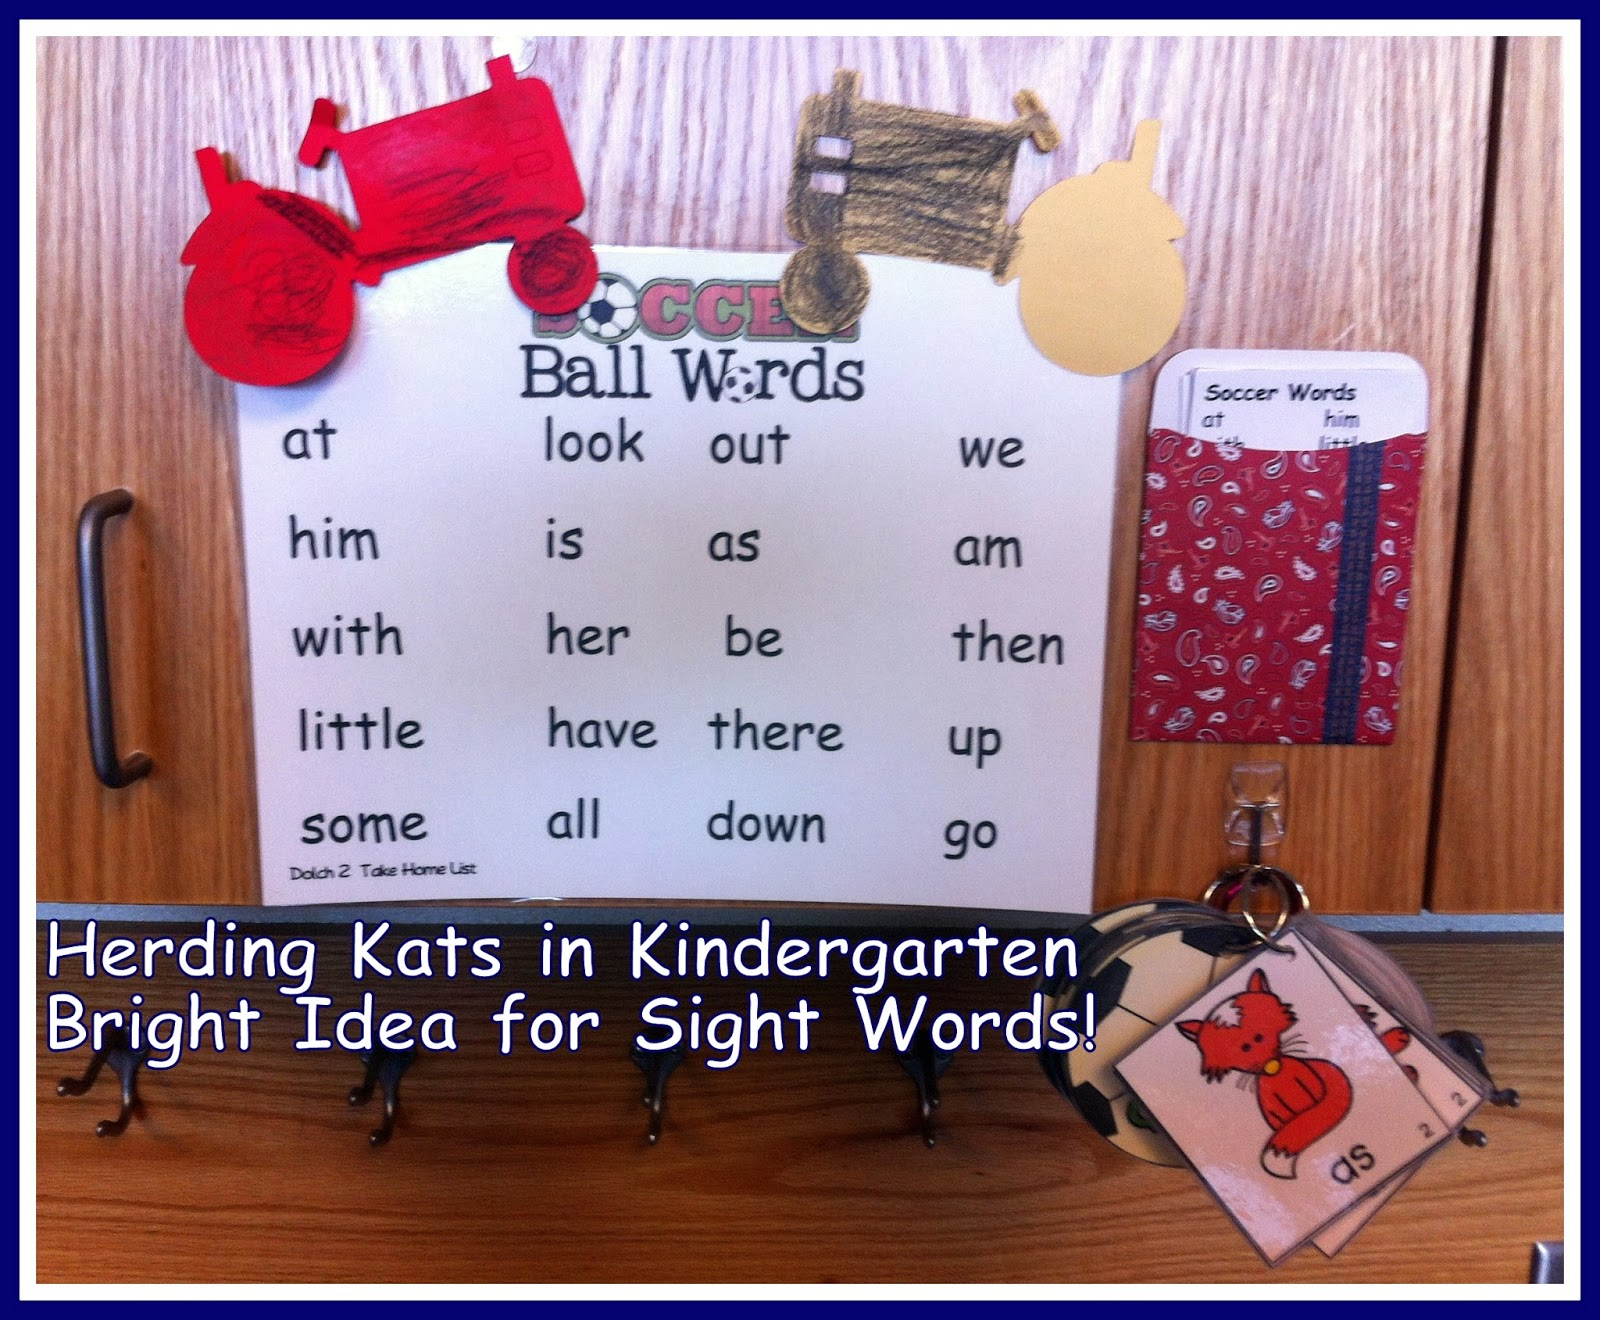 http://www.herdingkats.blogspot.com/2014/05/bright-idea-for-sight-words.html